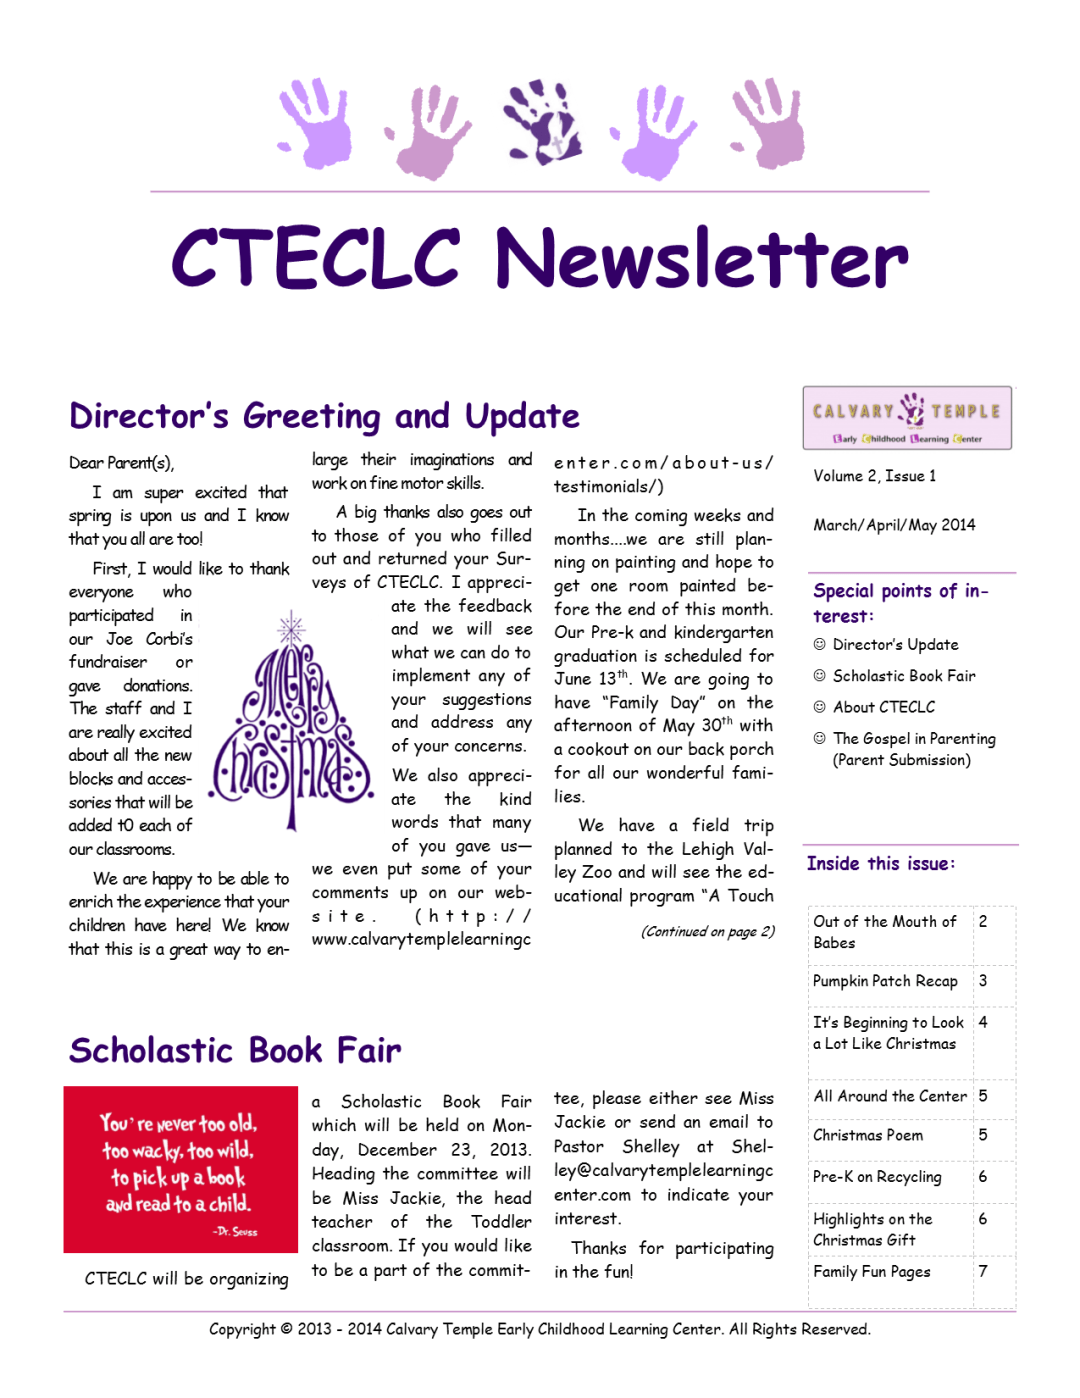 CTECLC March/April/May Newsletter 2014